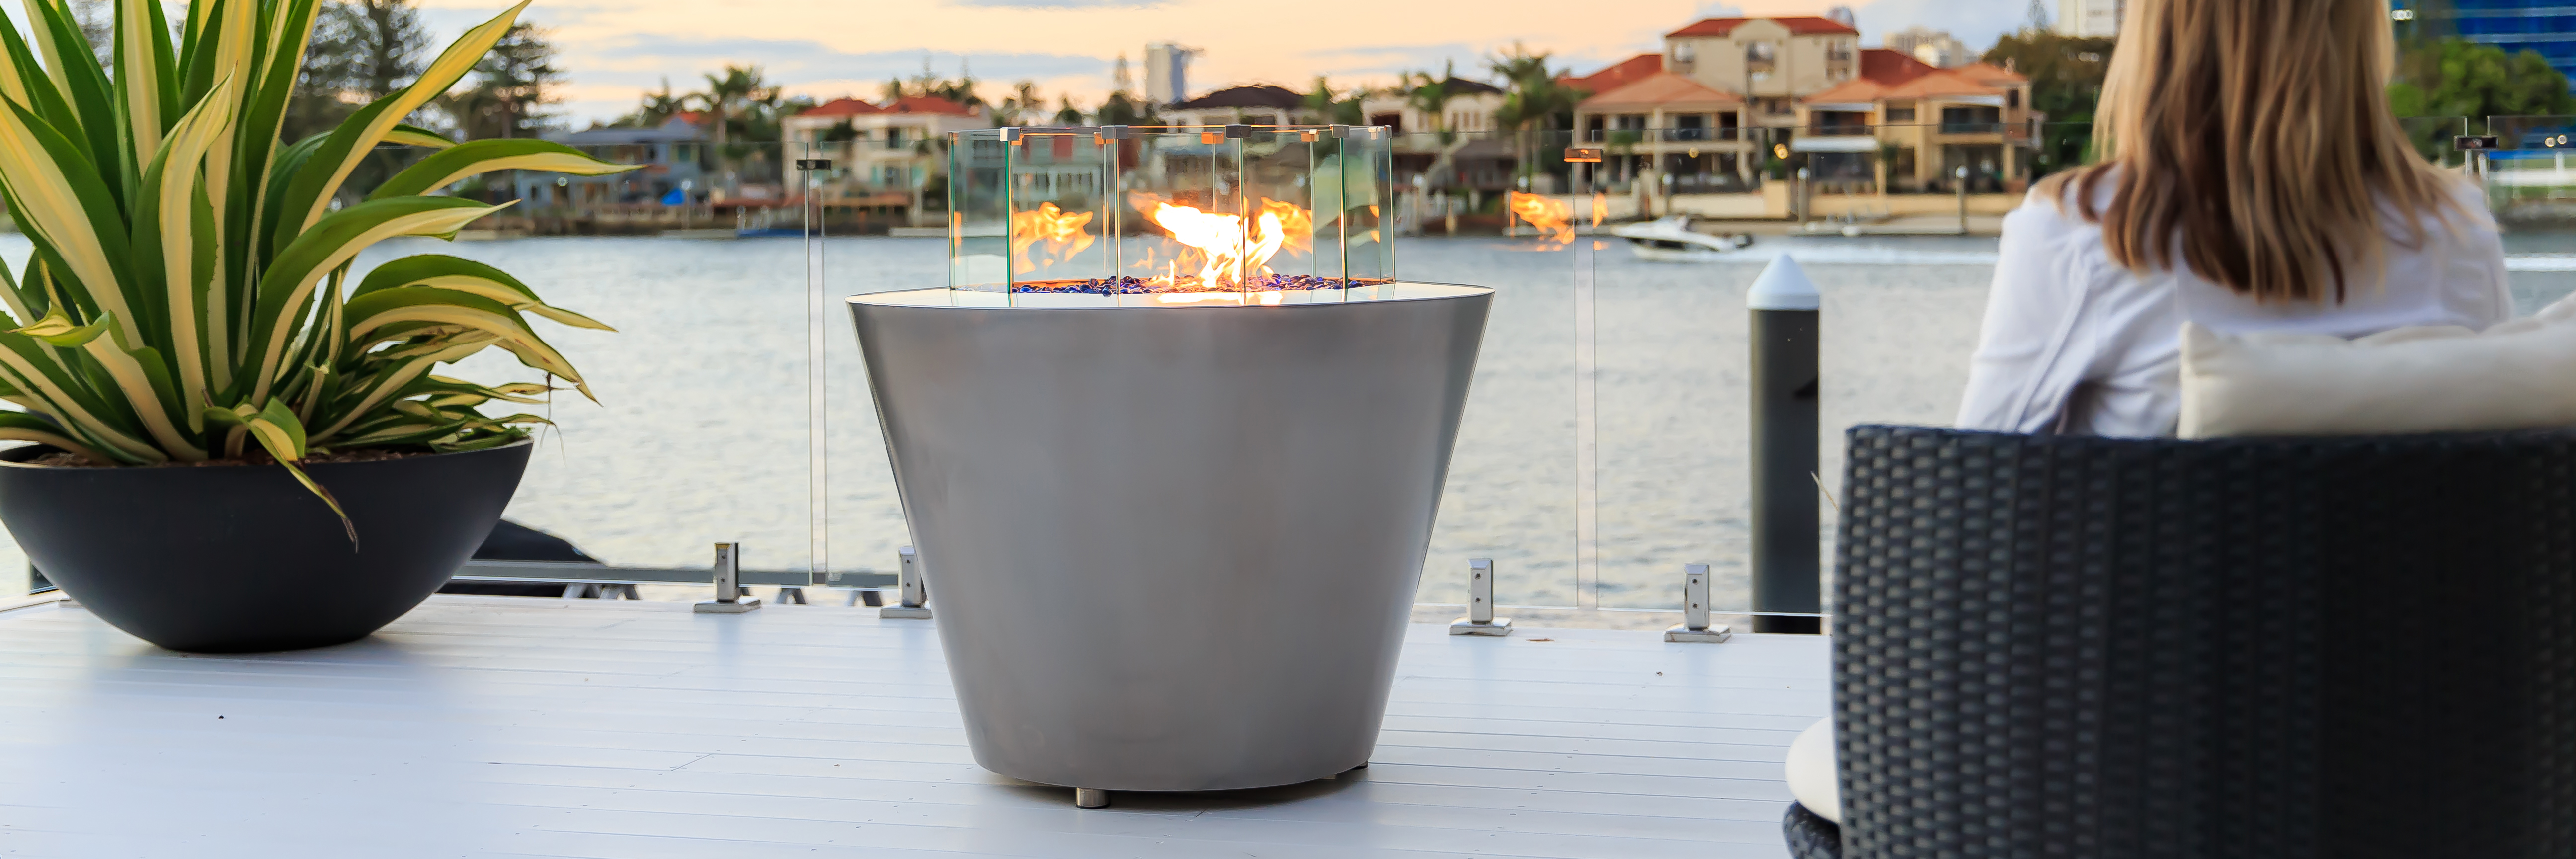 Stainless steel ignites  luxury, style and warmth